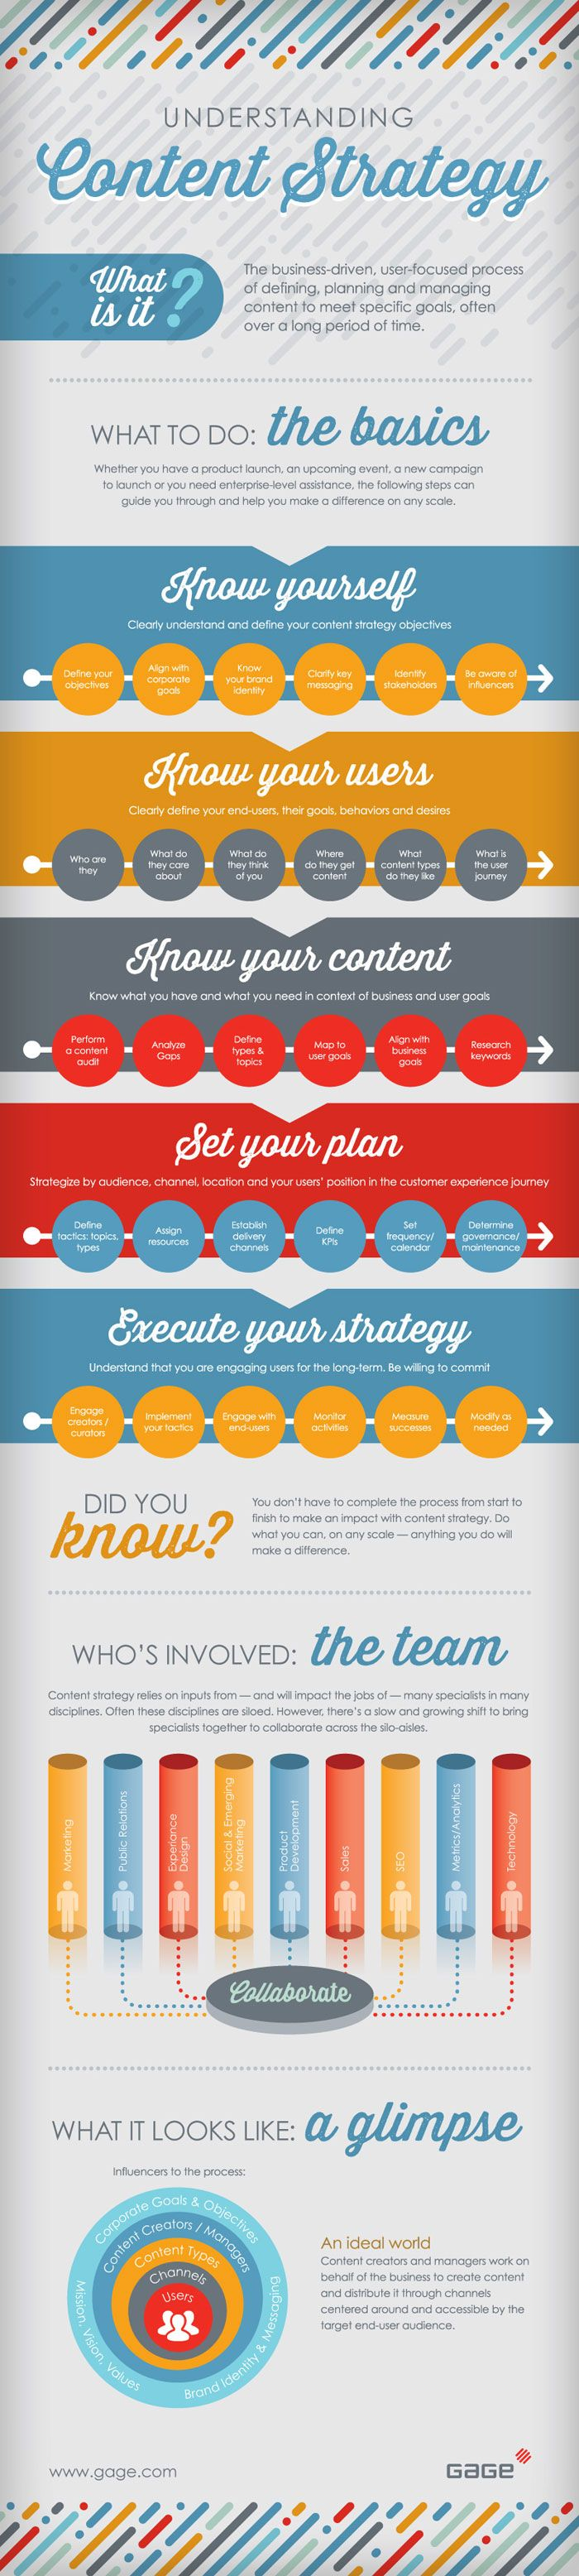 Understanding the #ContentMarketing Strategy - #infographic #bespokedigitalmedia http://www.bespokedigitalmedia.co.in